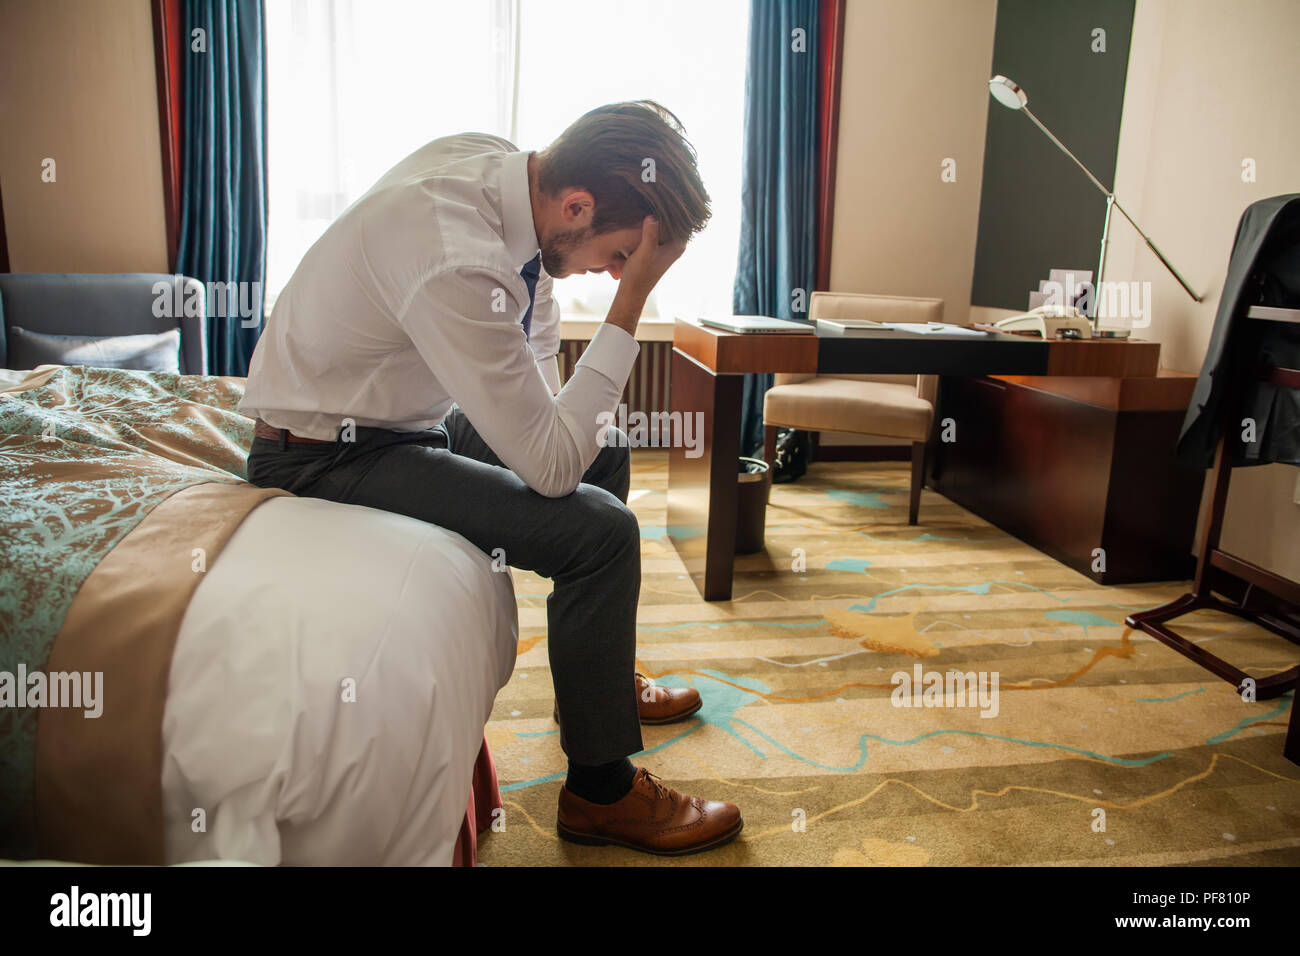 Frustrated young man in formal suit sitting on bed besides luggage bag. Businessman thinking about problems in business or at home, not feeling well, lost job, relationships or work related stress - Stock Image